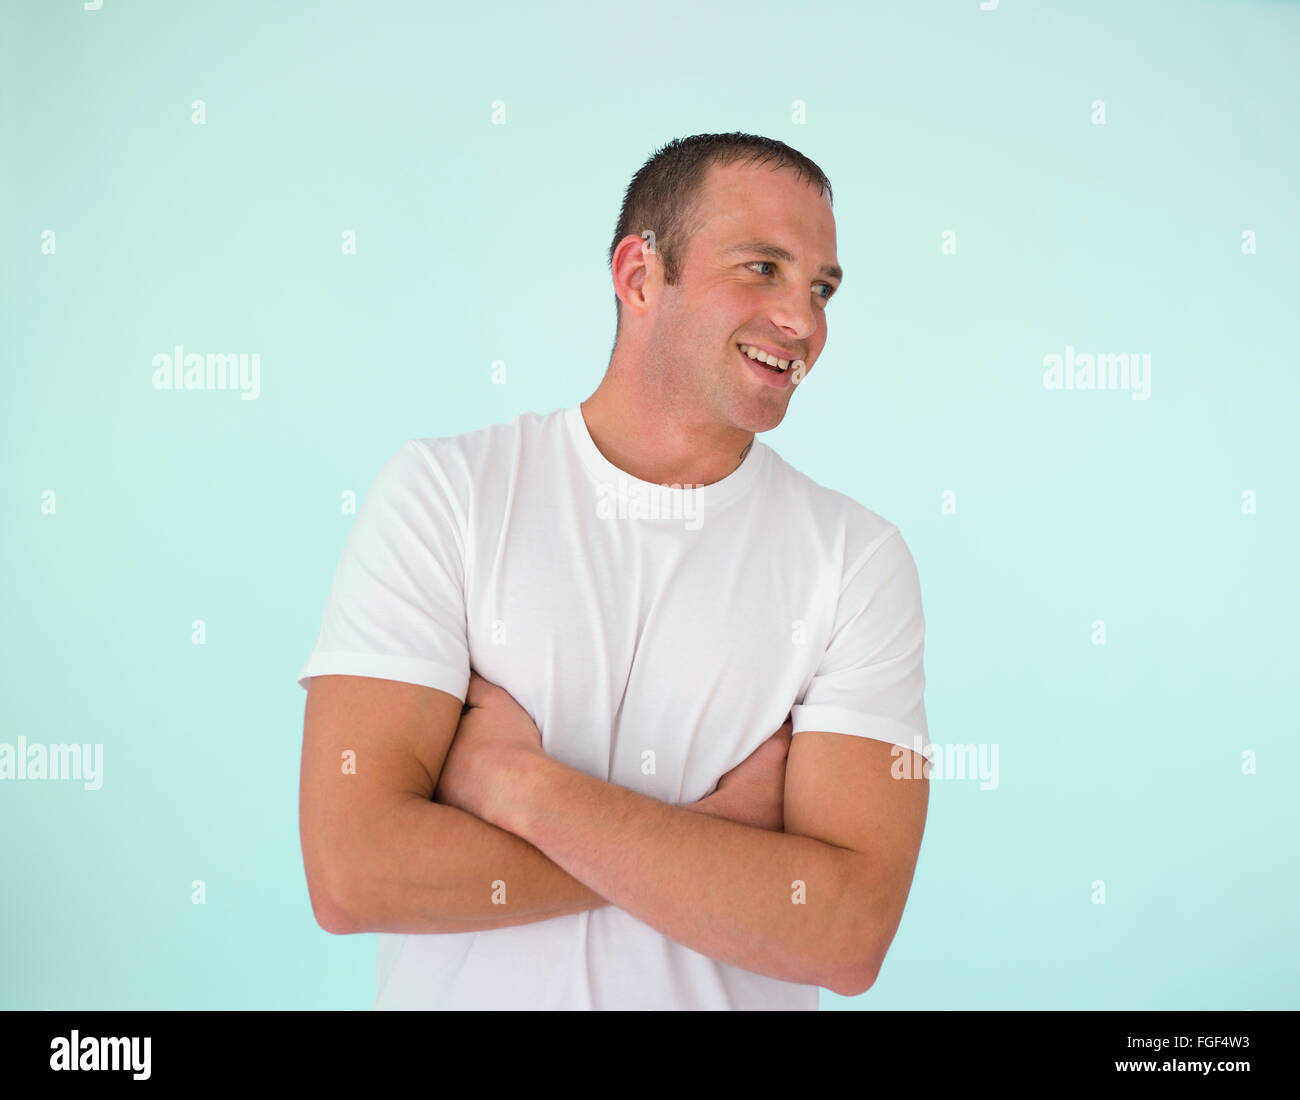 Man with folded arms, smiling - Stock Image